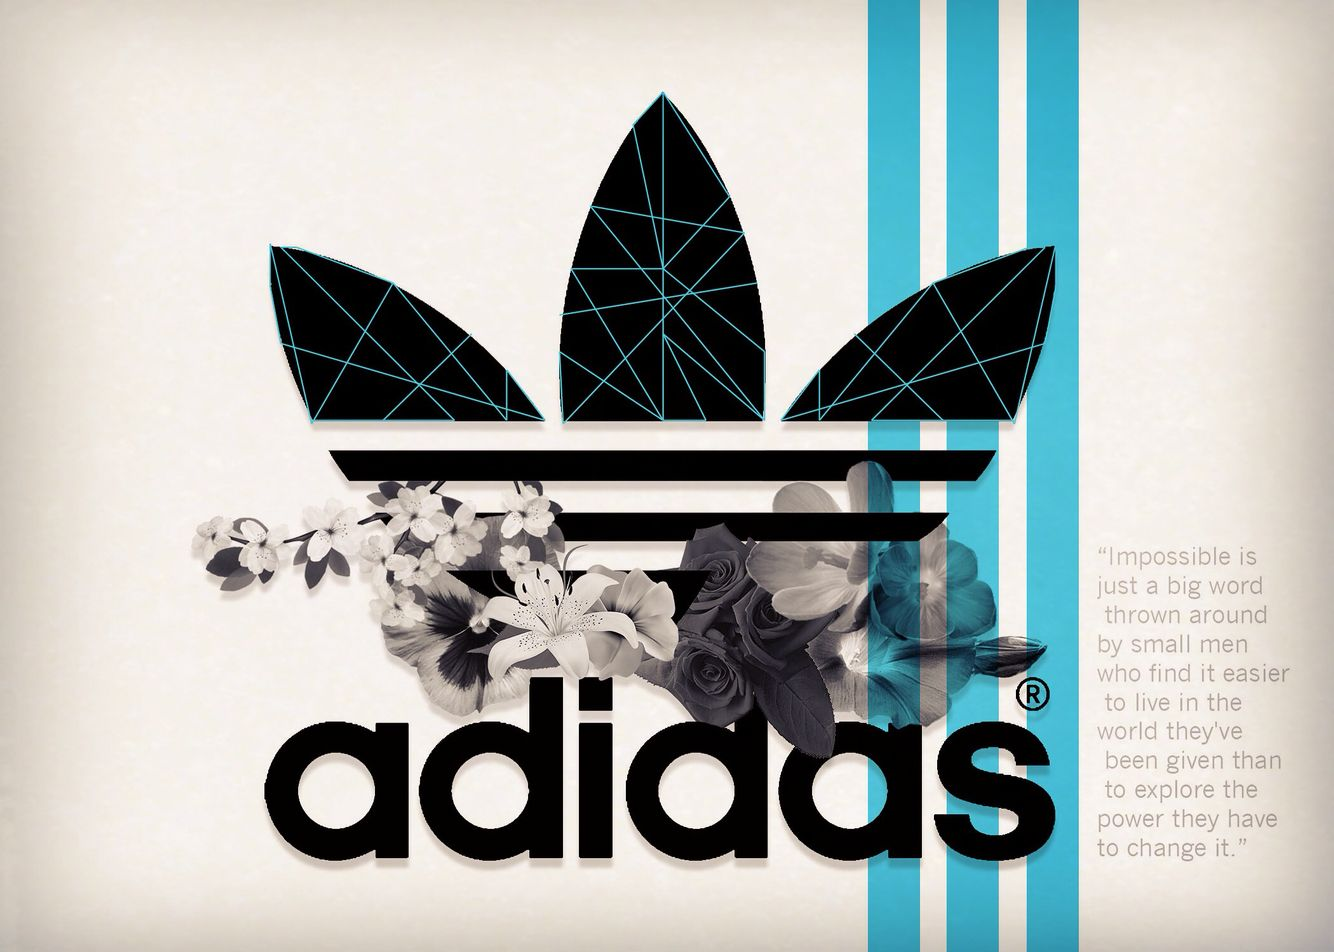 Another poster design I created for Adidas #Adidas   Adidas poster ...